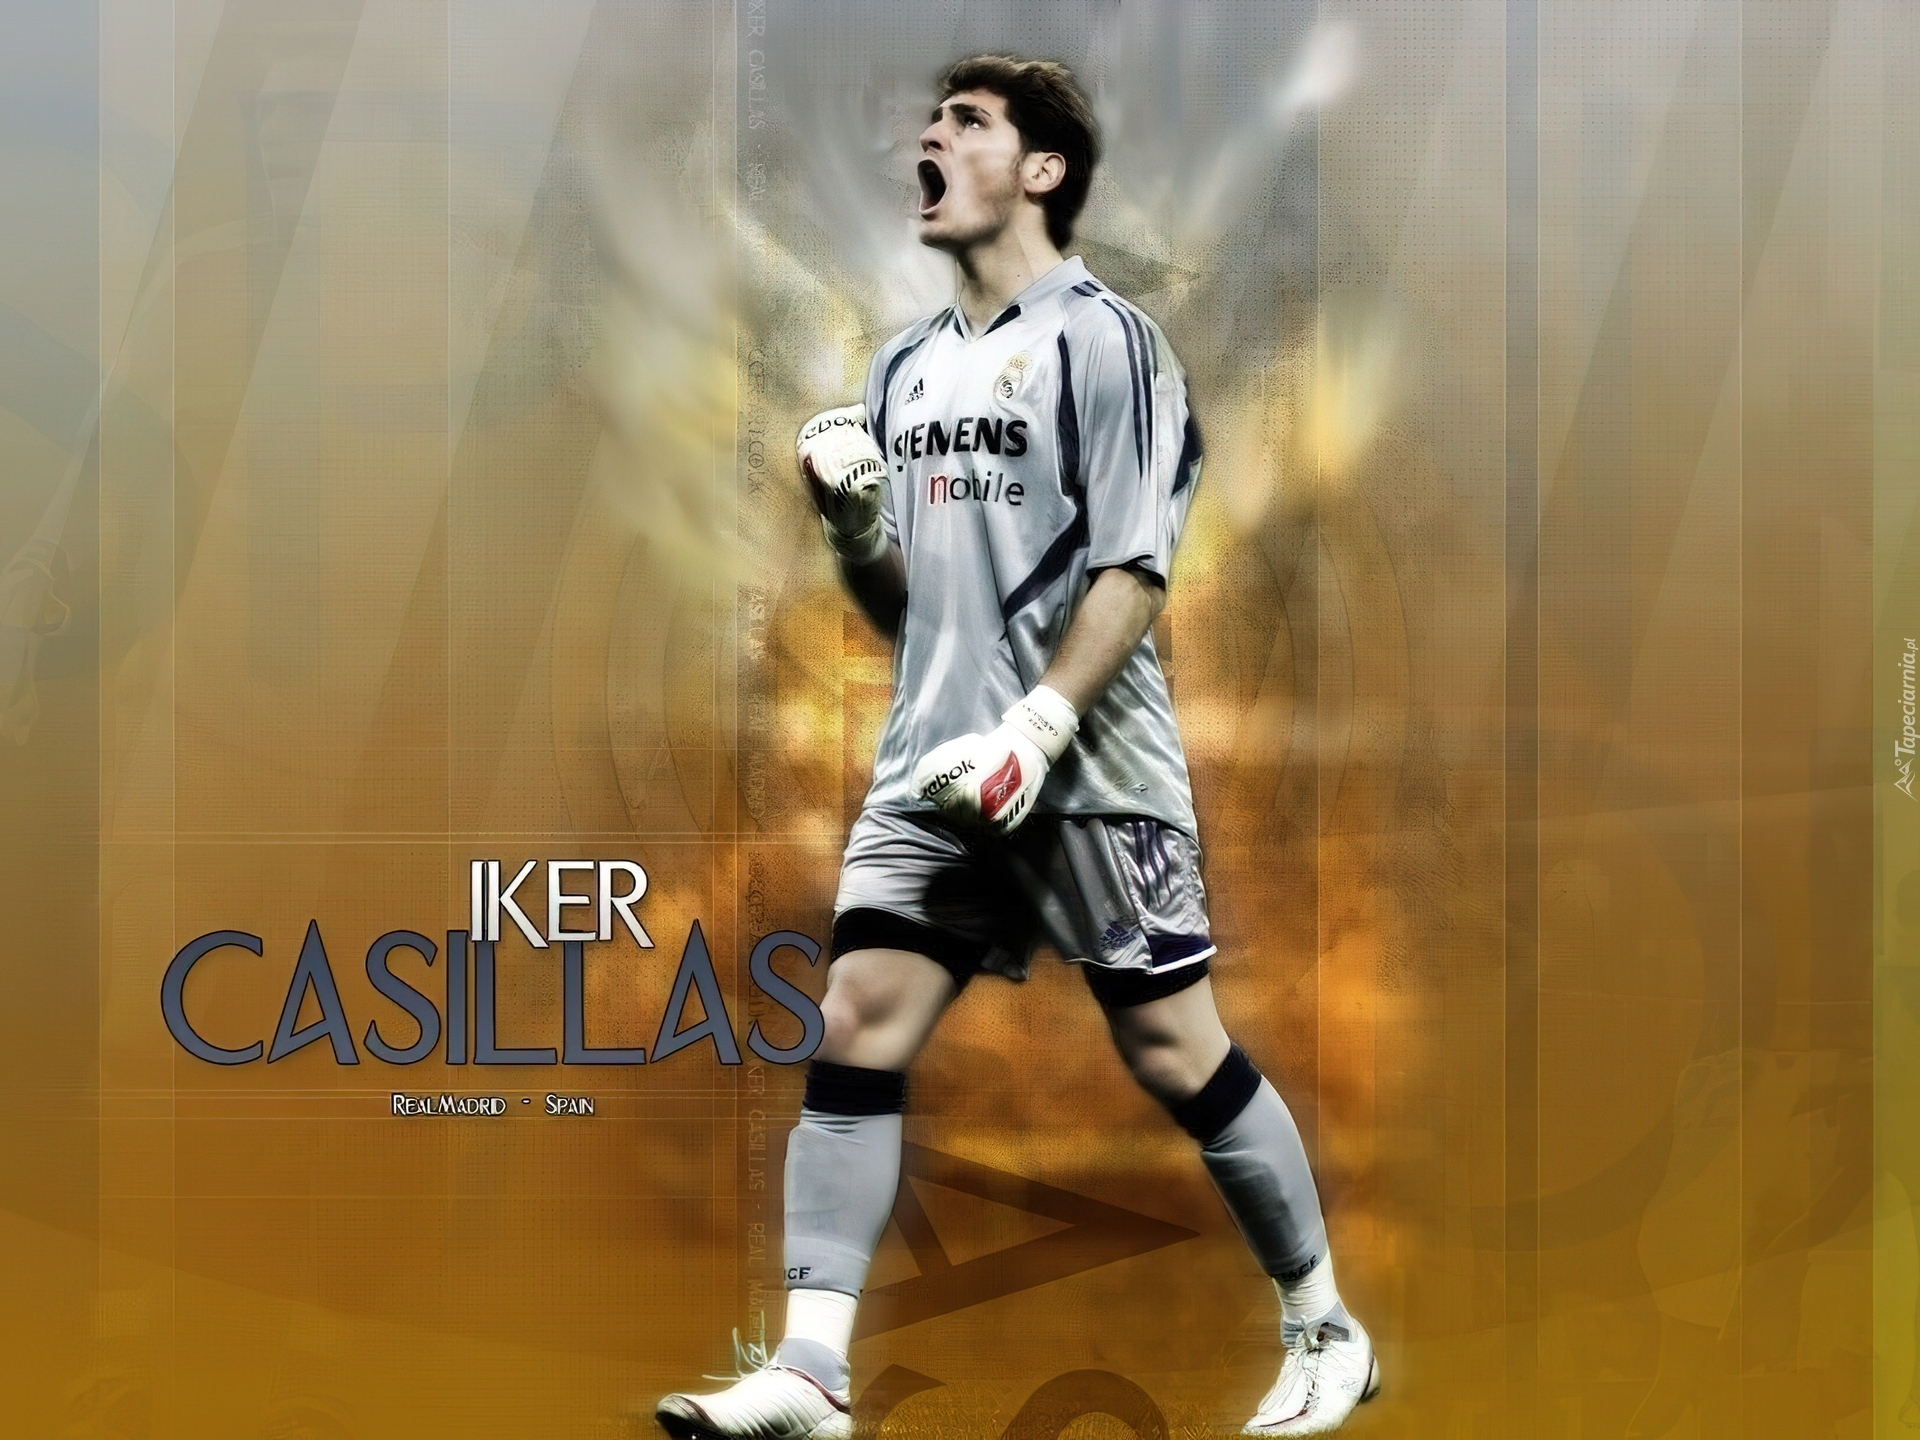 Iker Casillas  Real Madryt